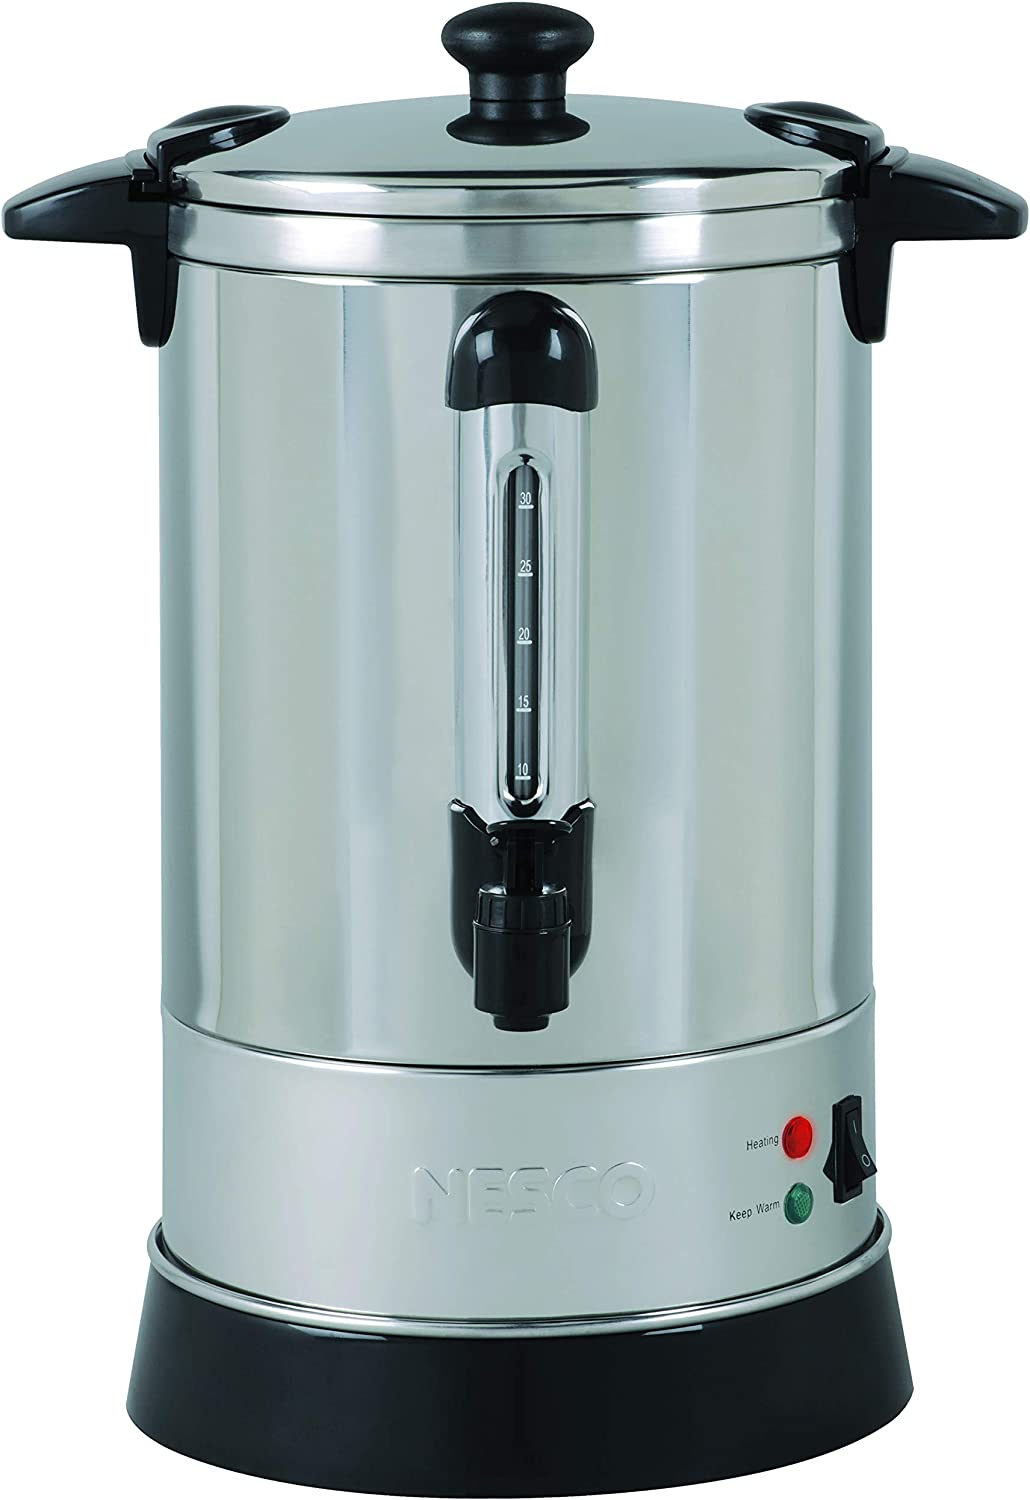 Nesco Professional Coffee Urn, 30 Cups, Stainless Steel